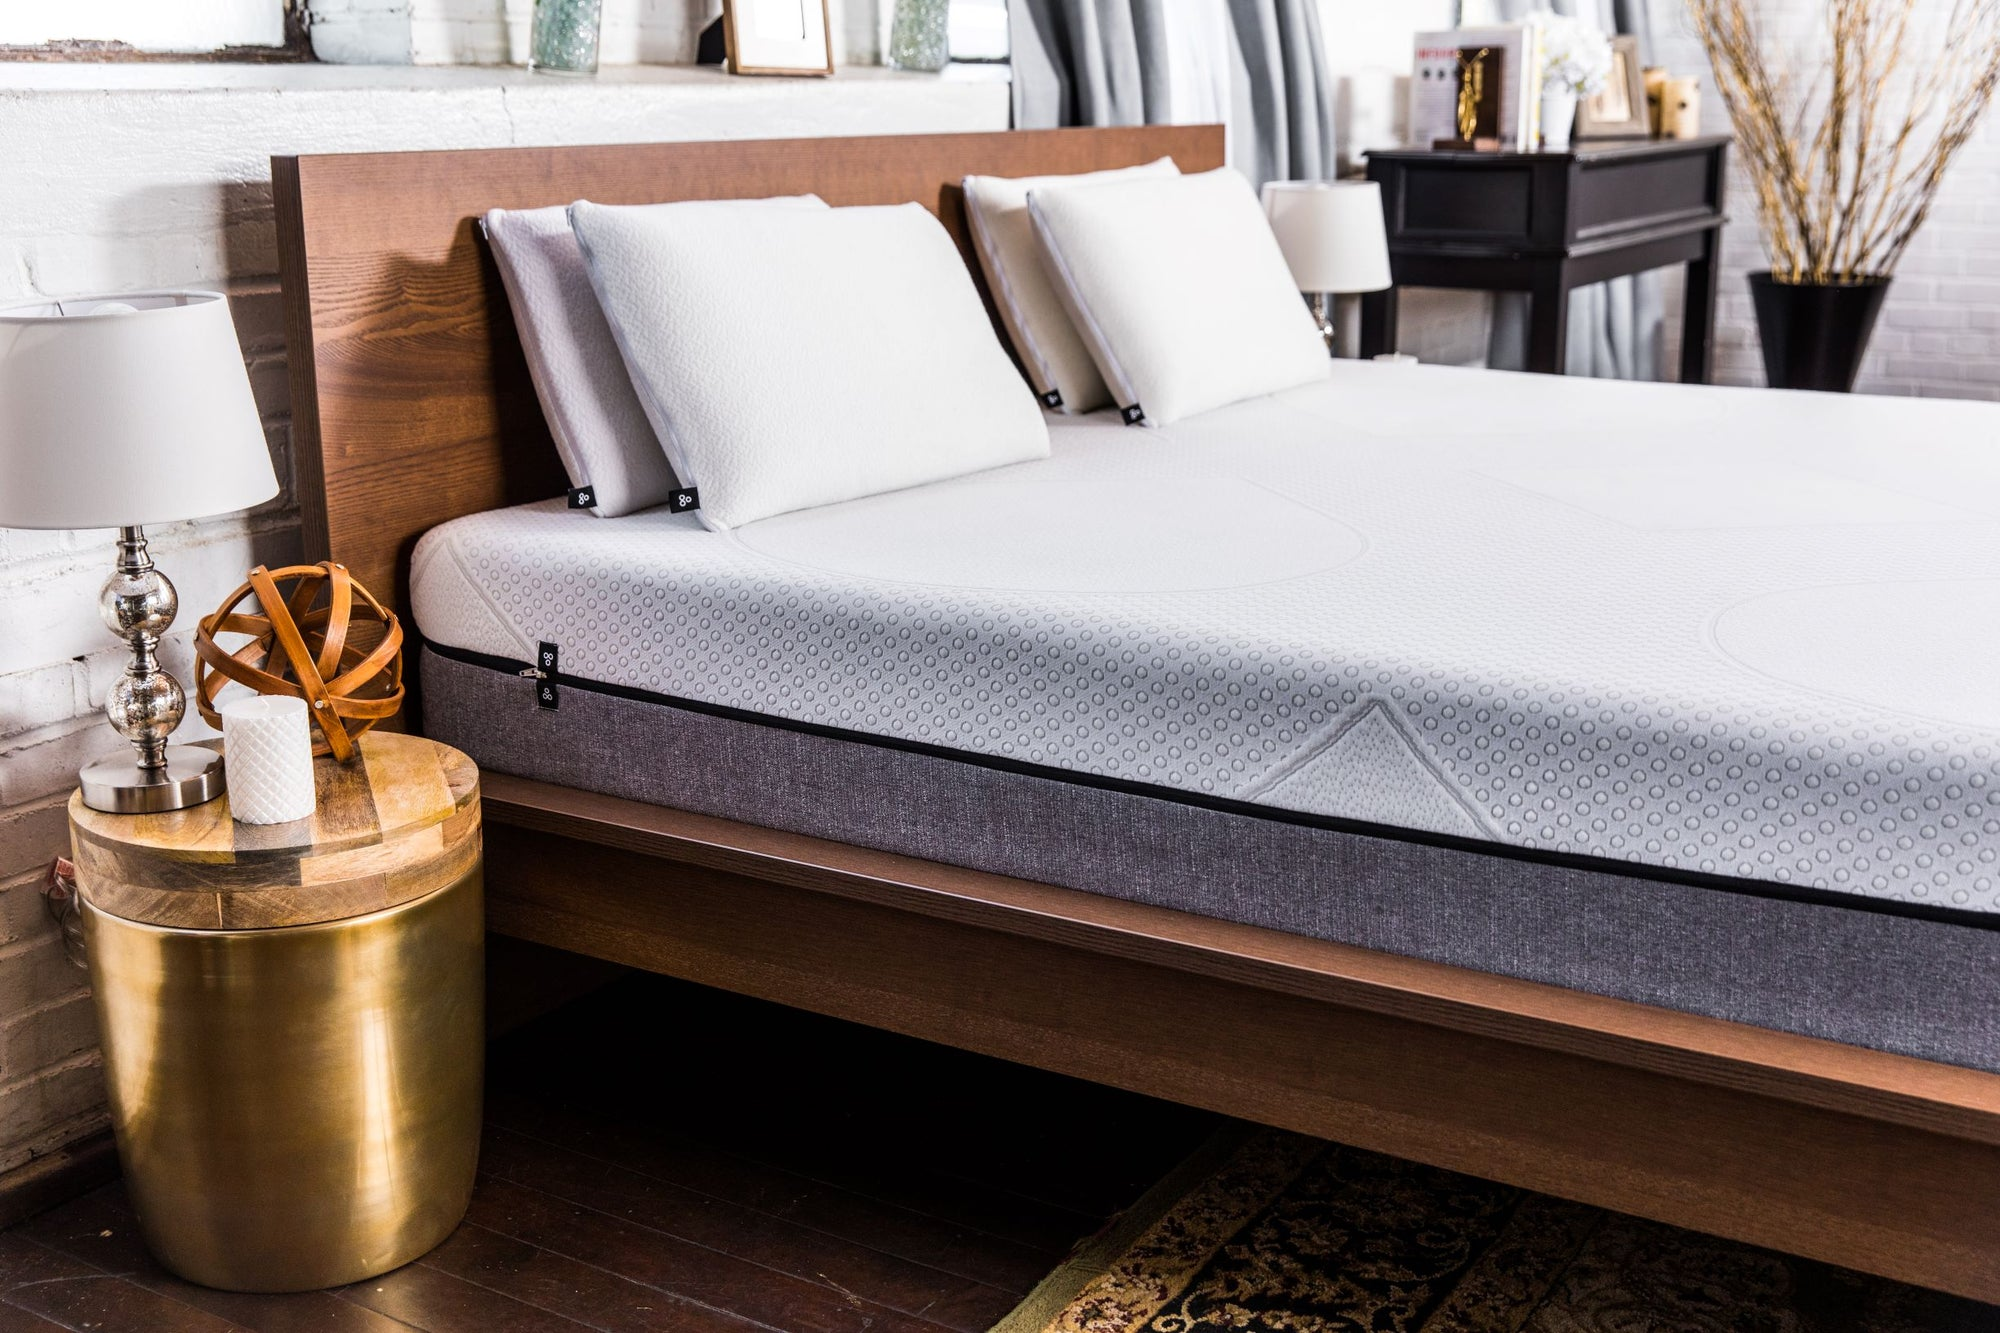 Is a Queen Size Bed for You? - Queen Size Bed Dimensions - Yogasleep | Love Real Sleep